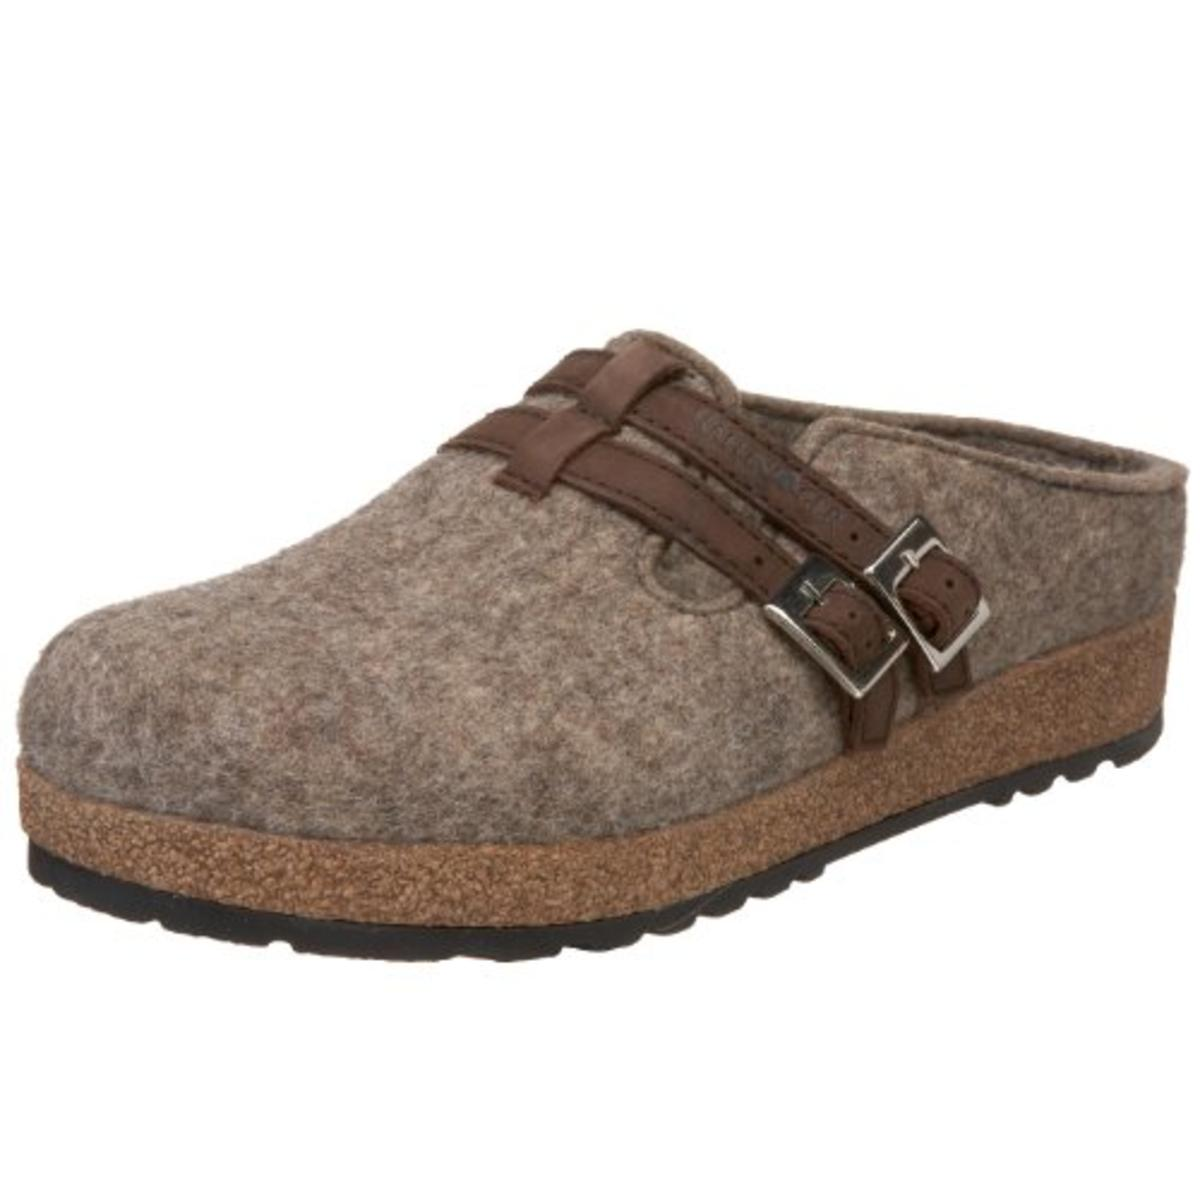 Haflinger Womens Wool Casual Clogs by Haflinger